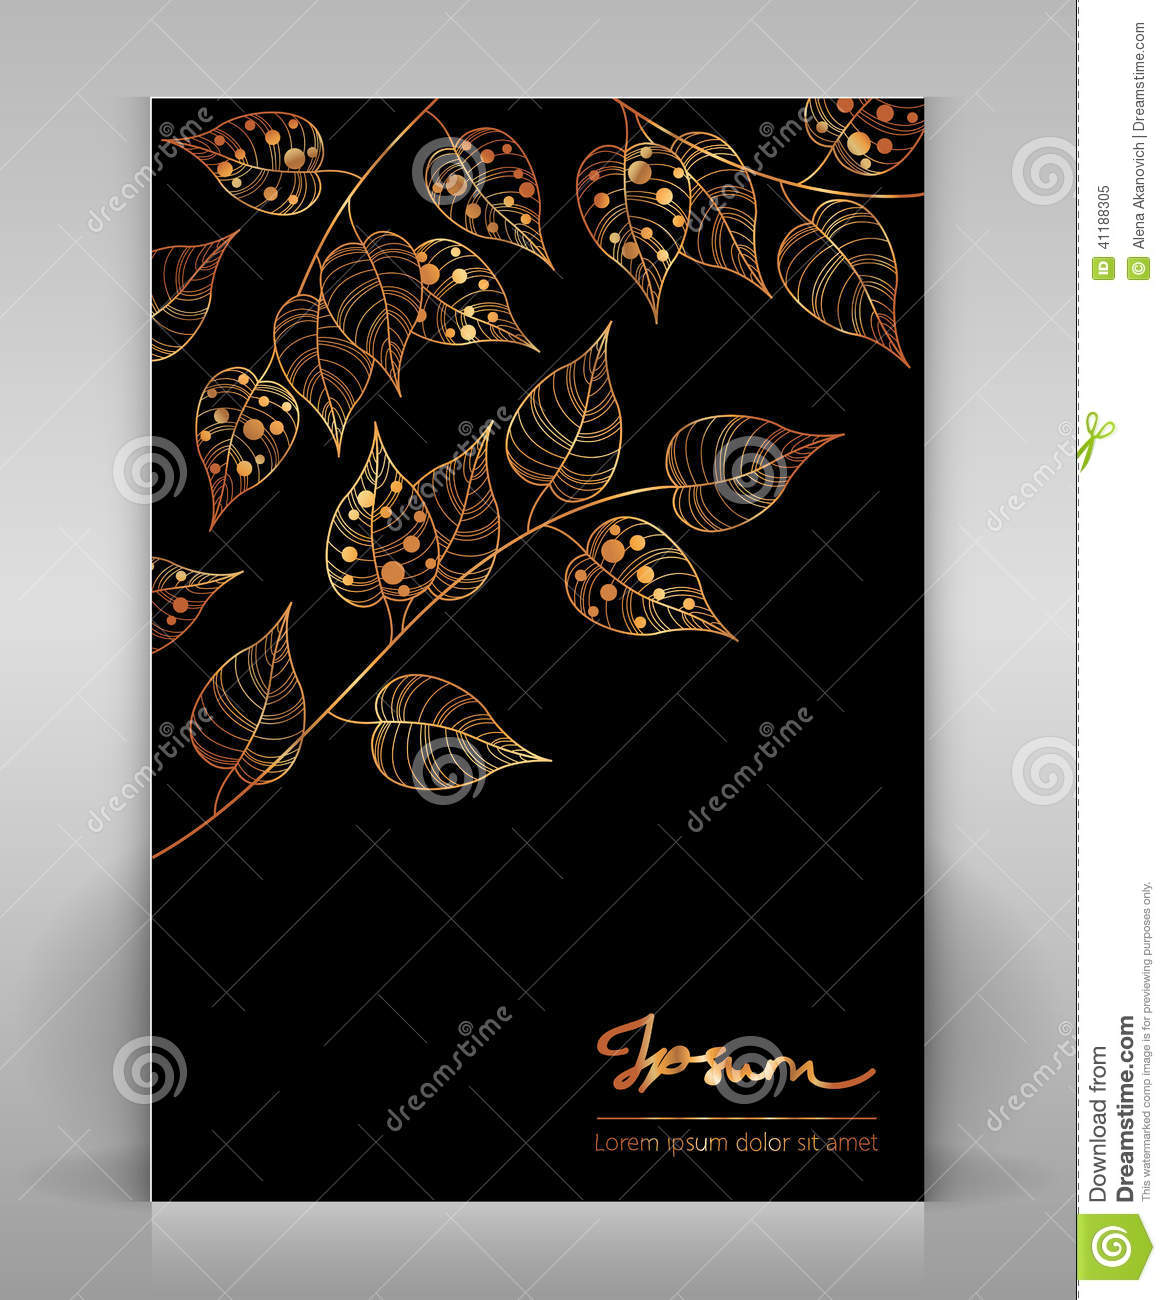 Black and gold flyer stock image Image of decoration 41188305